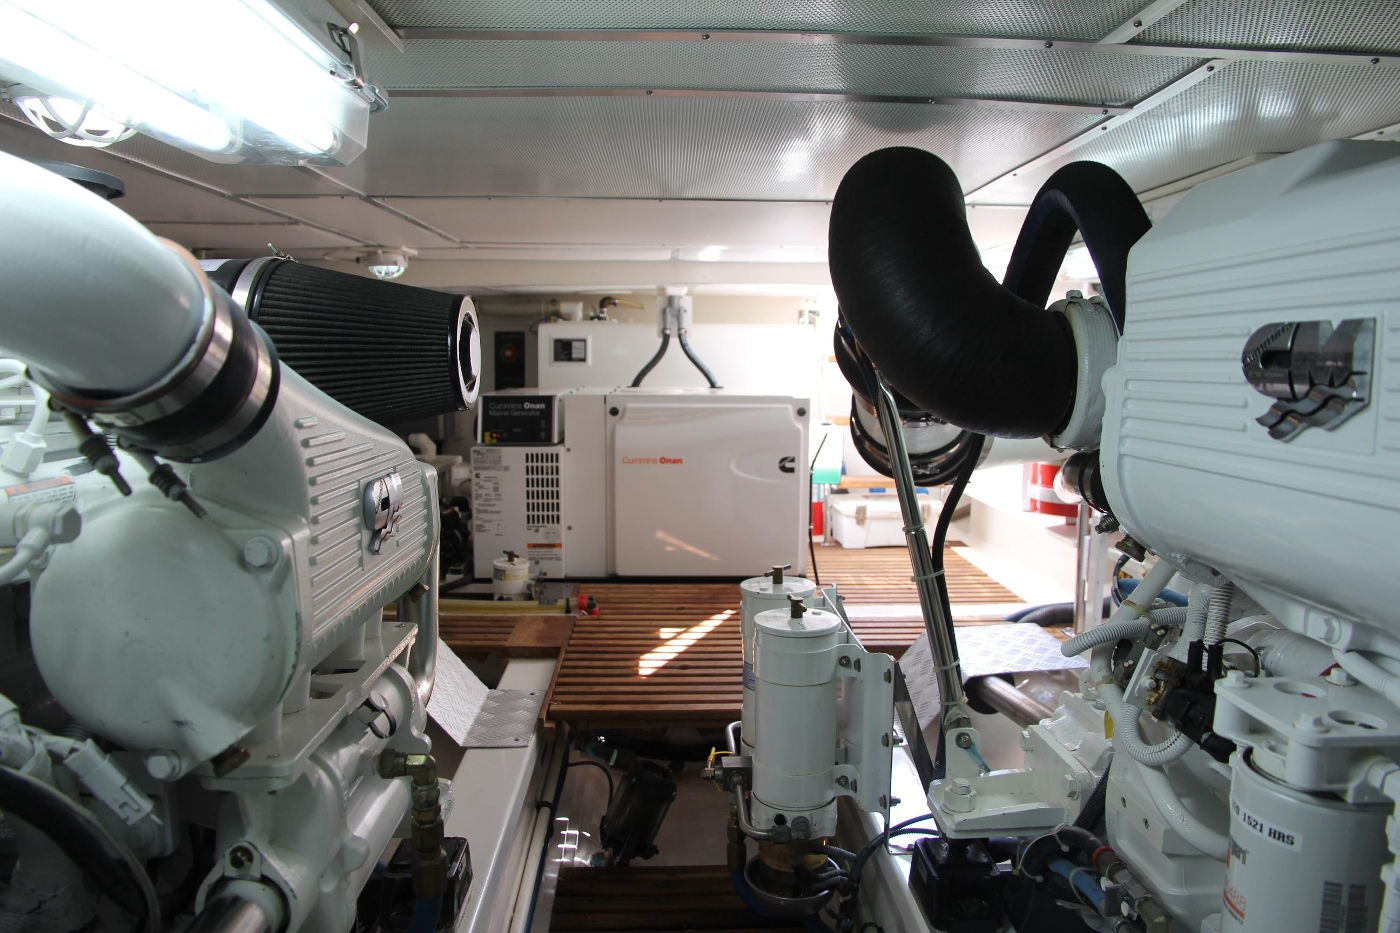 2009 Grand Banks 47 Europa, Engine Room Looking Aft